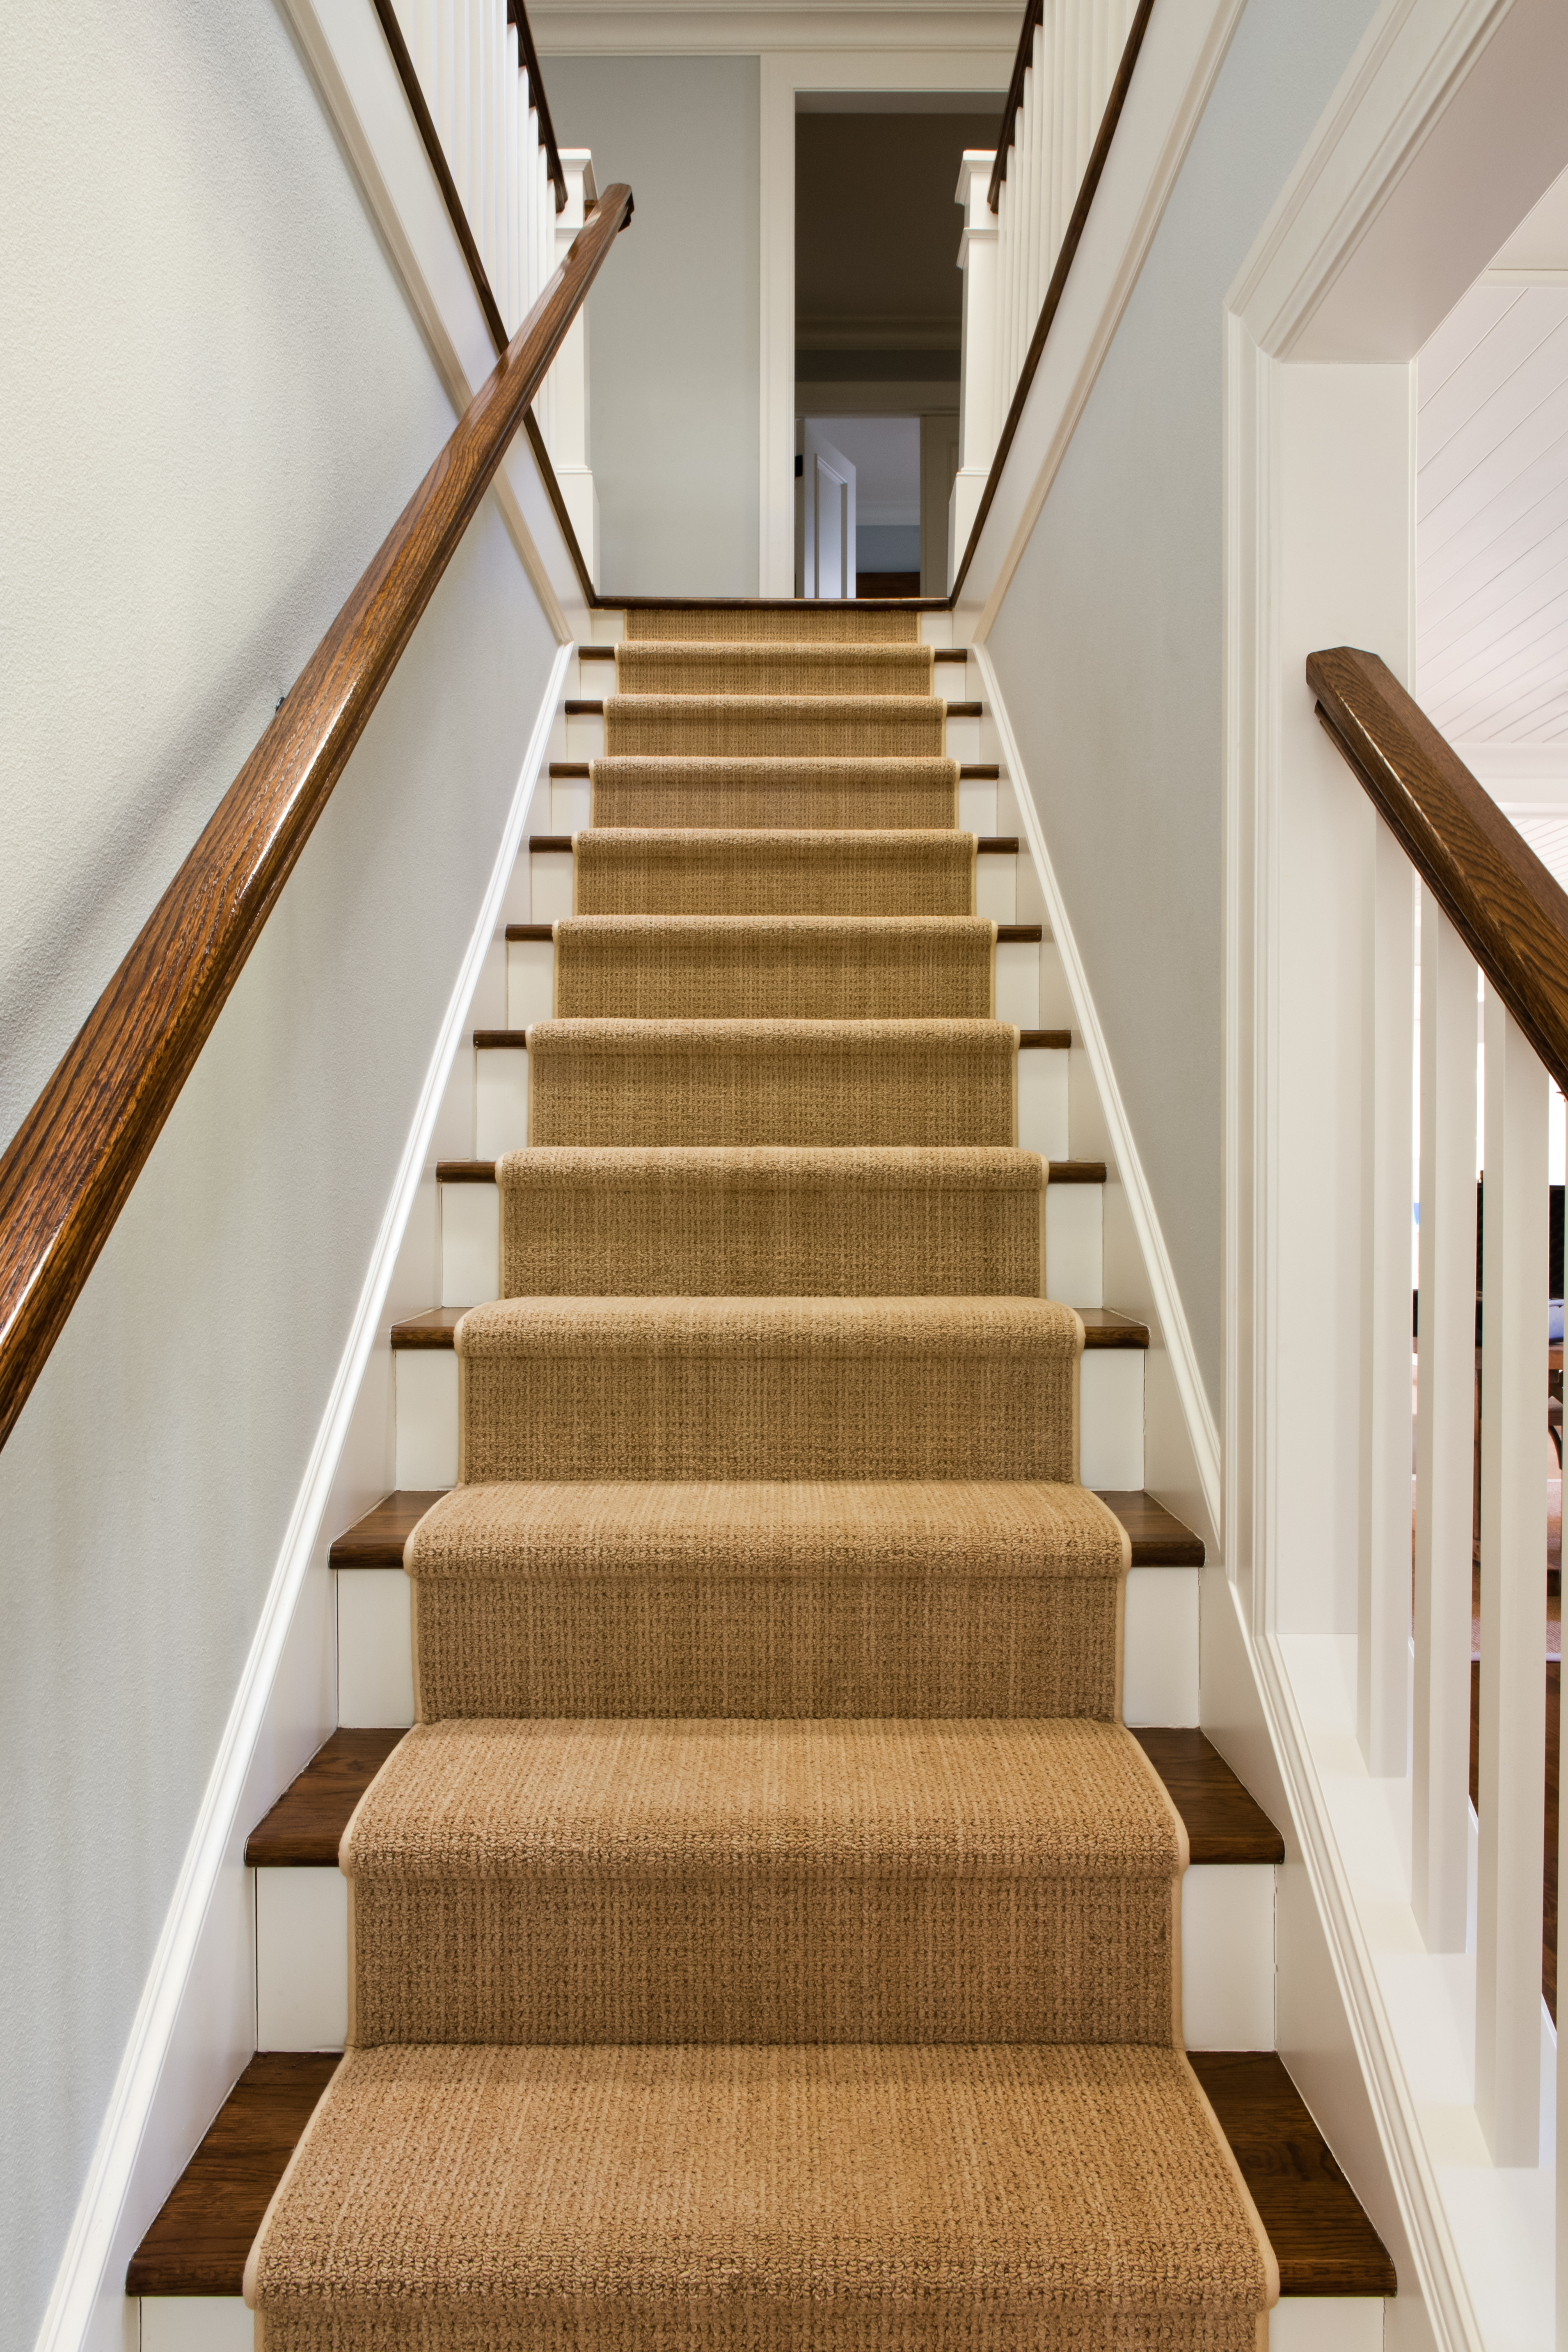 Stair Carpet Freehold Marlboro Manalapan Throughout Traction Pads For Stairs (Image 13 of 15)